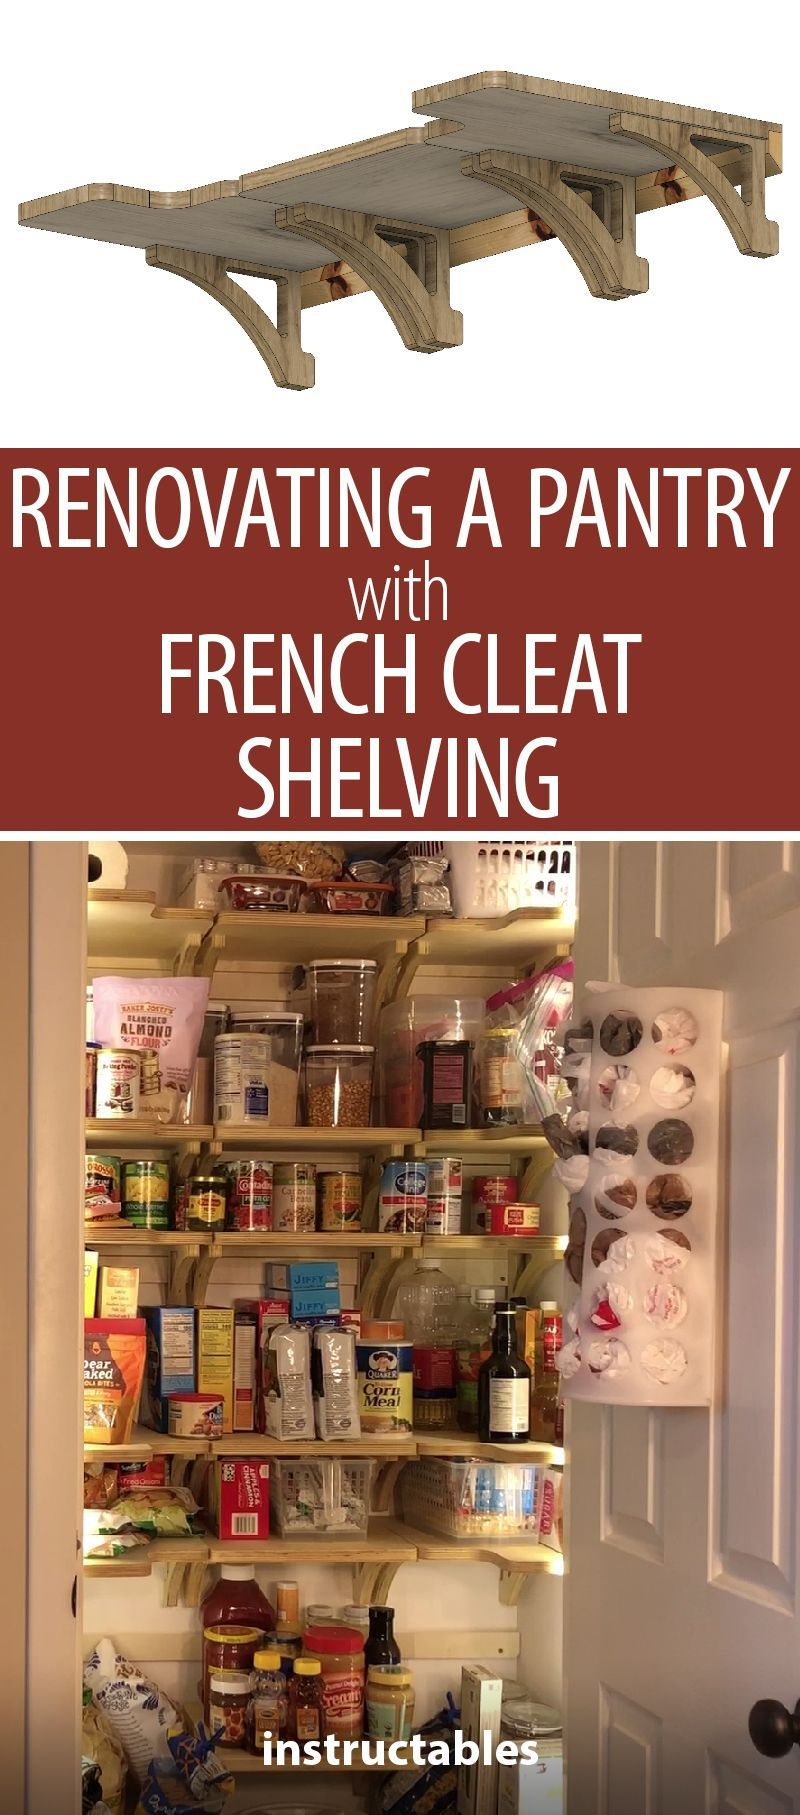 Renovating A Pantry With French Cleat Shelving Kitchen Shelves Organization Shelving Pantry Shelving